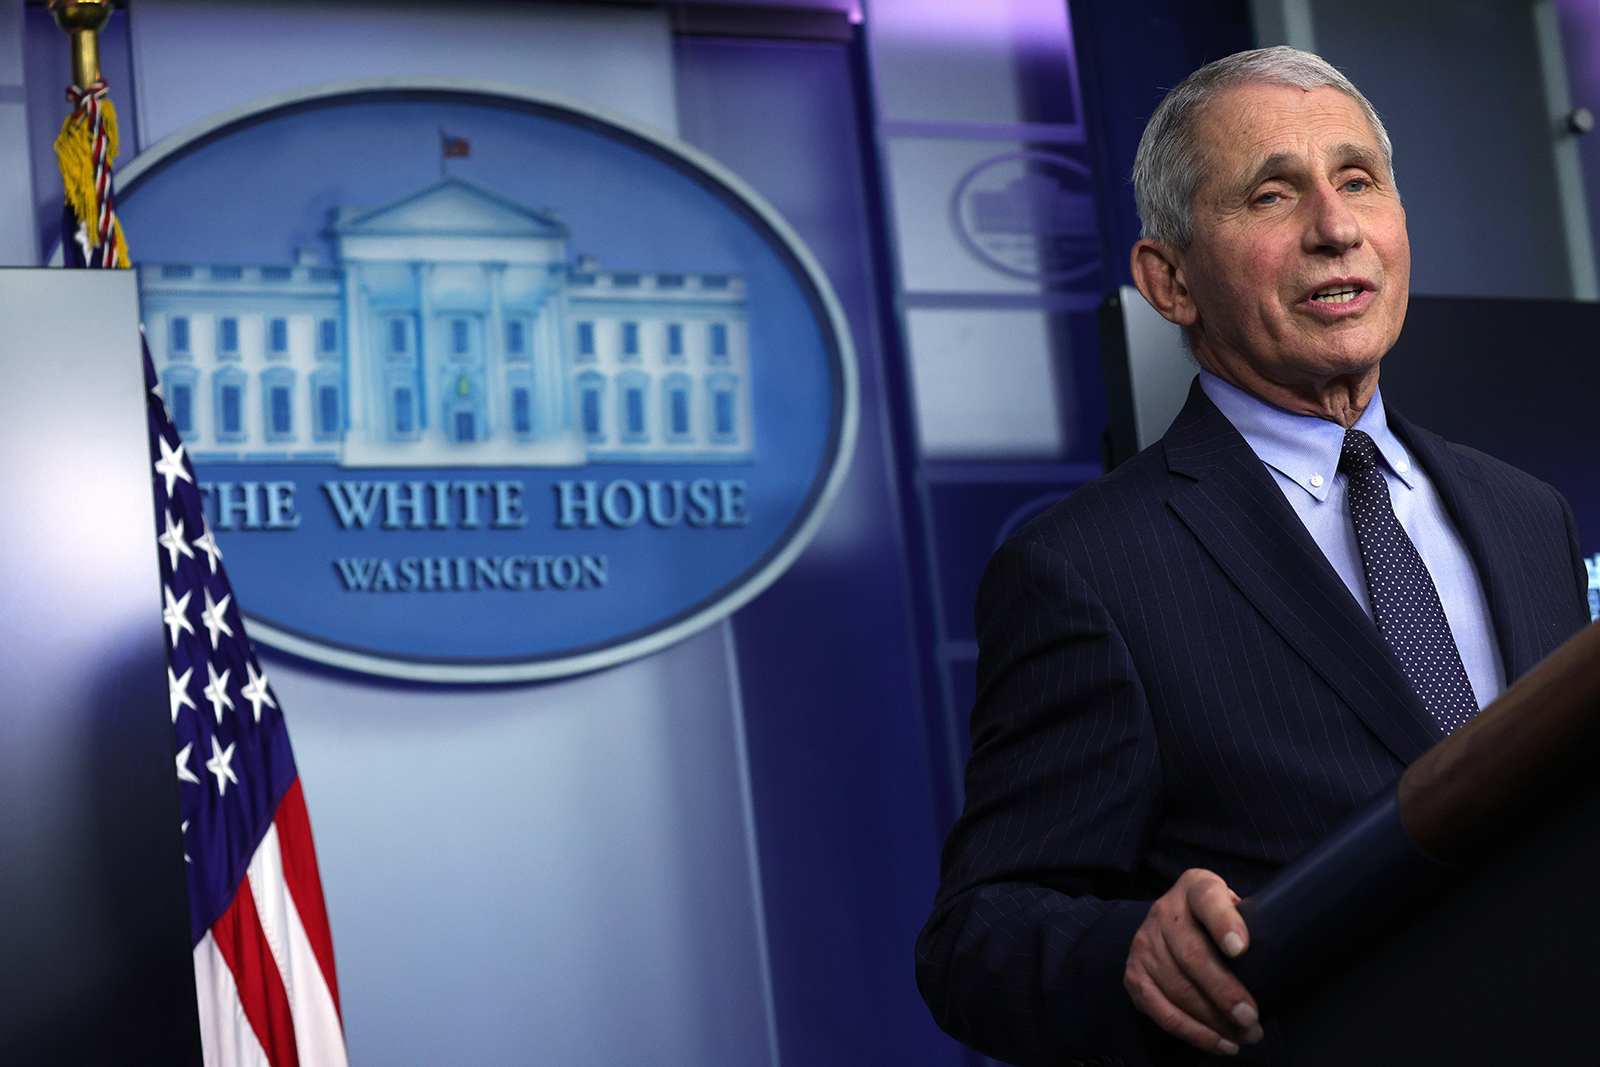 Dr. Anthony Fauci, director of the National Institute of Allergy and Infectious Diseases, speaks during a White House press briefing in Washington, D.C., on January 21.